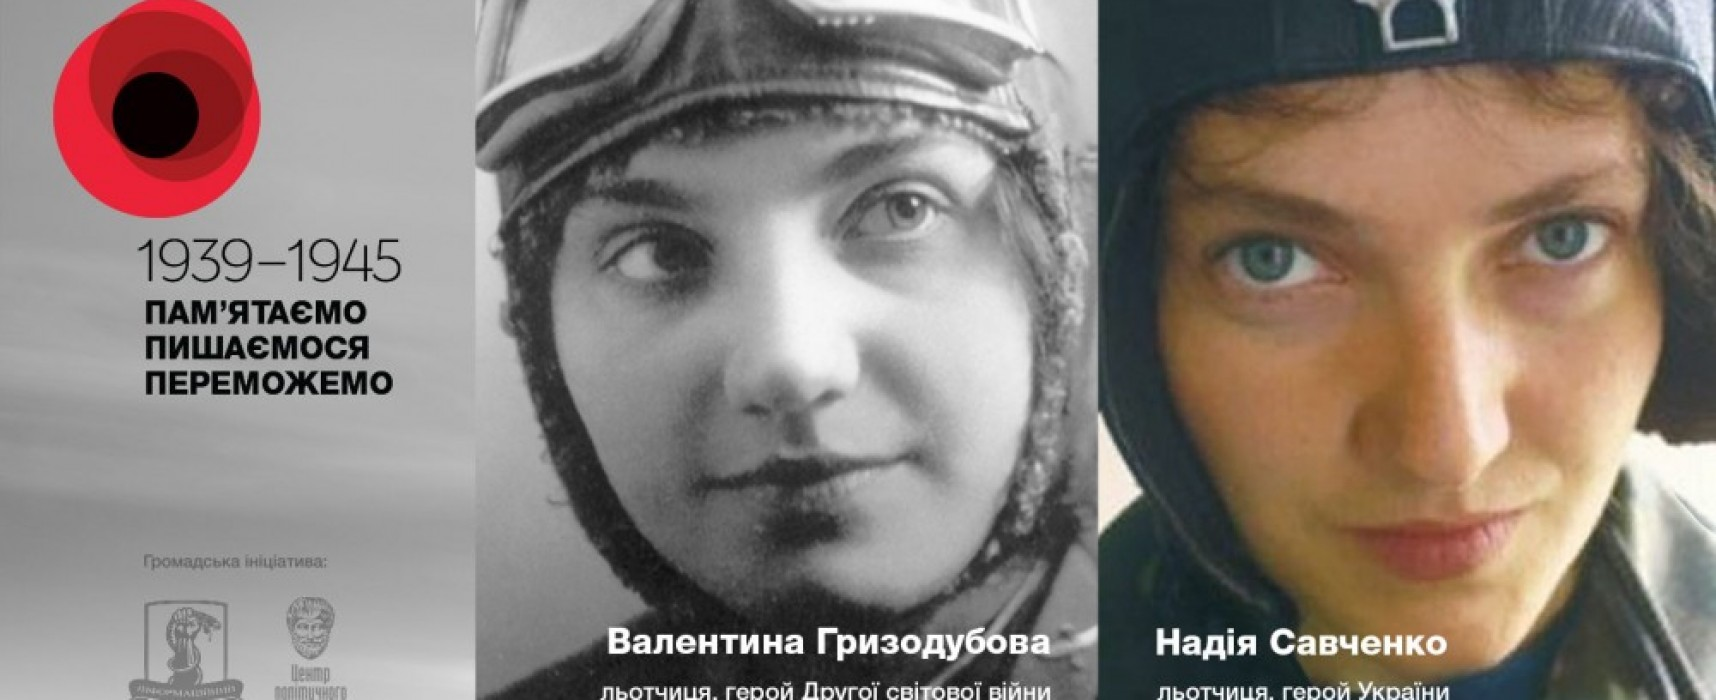 The series of posters links Ukraine's current struggle to WWII